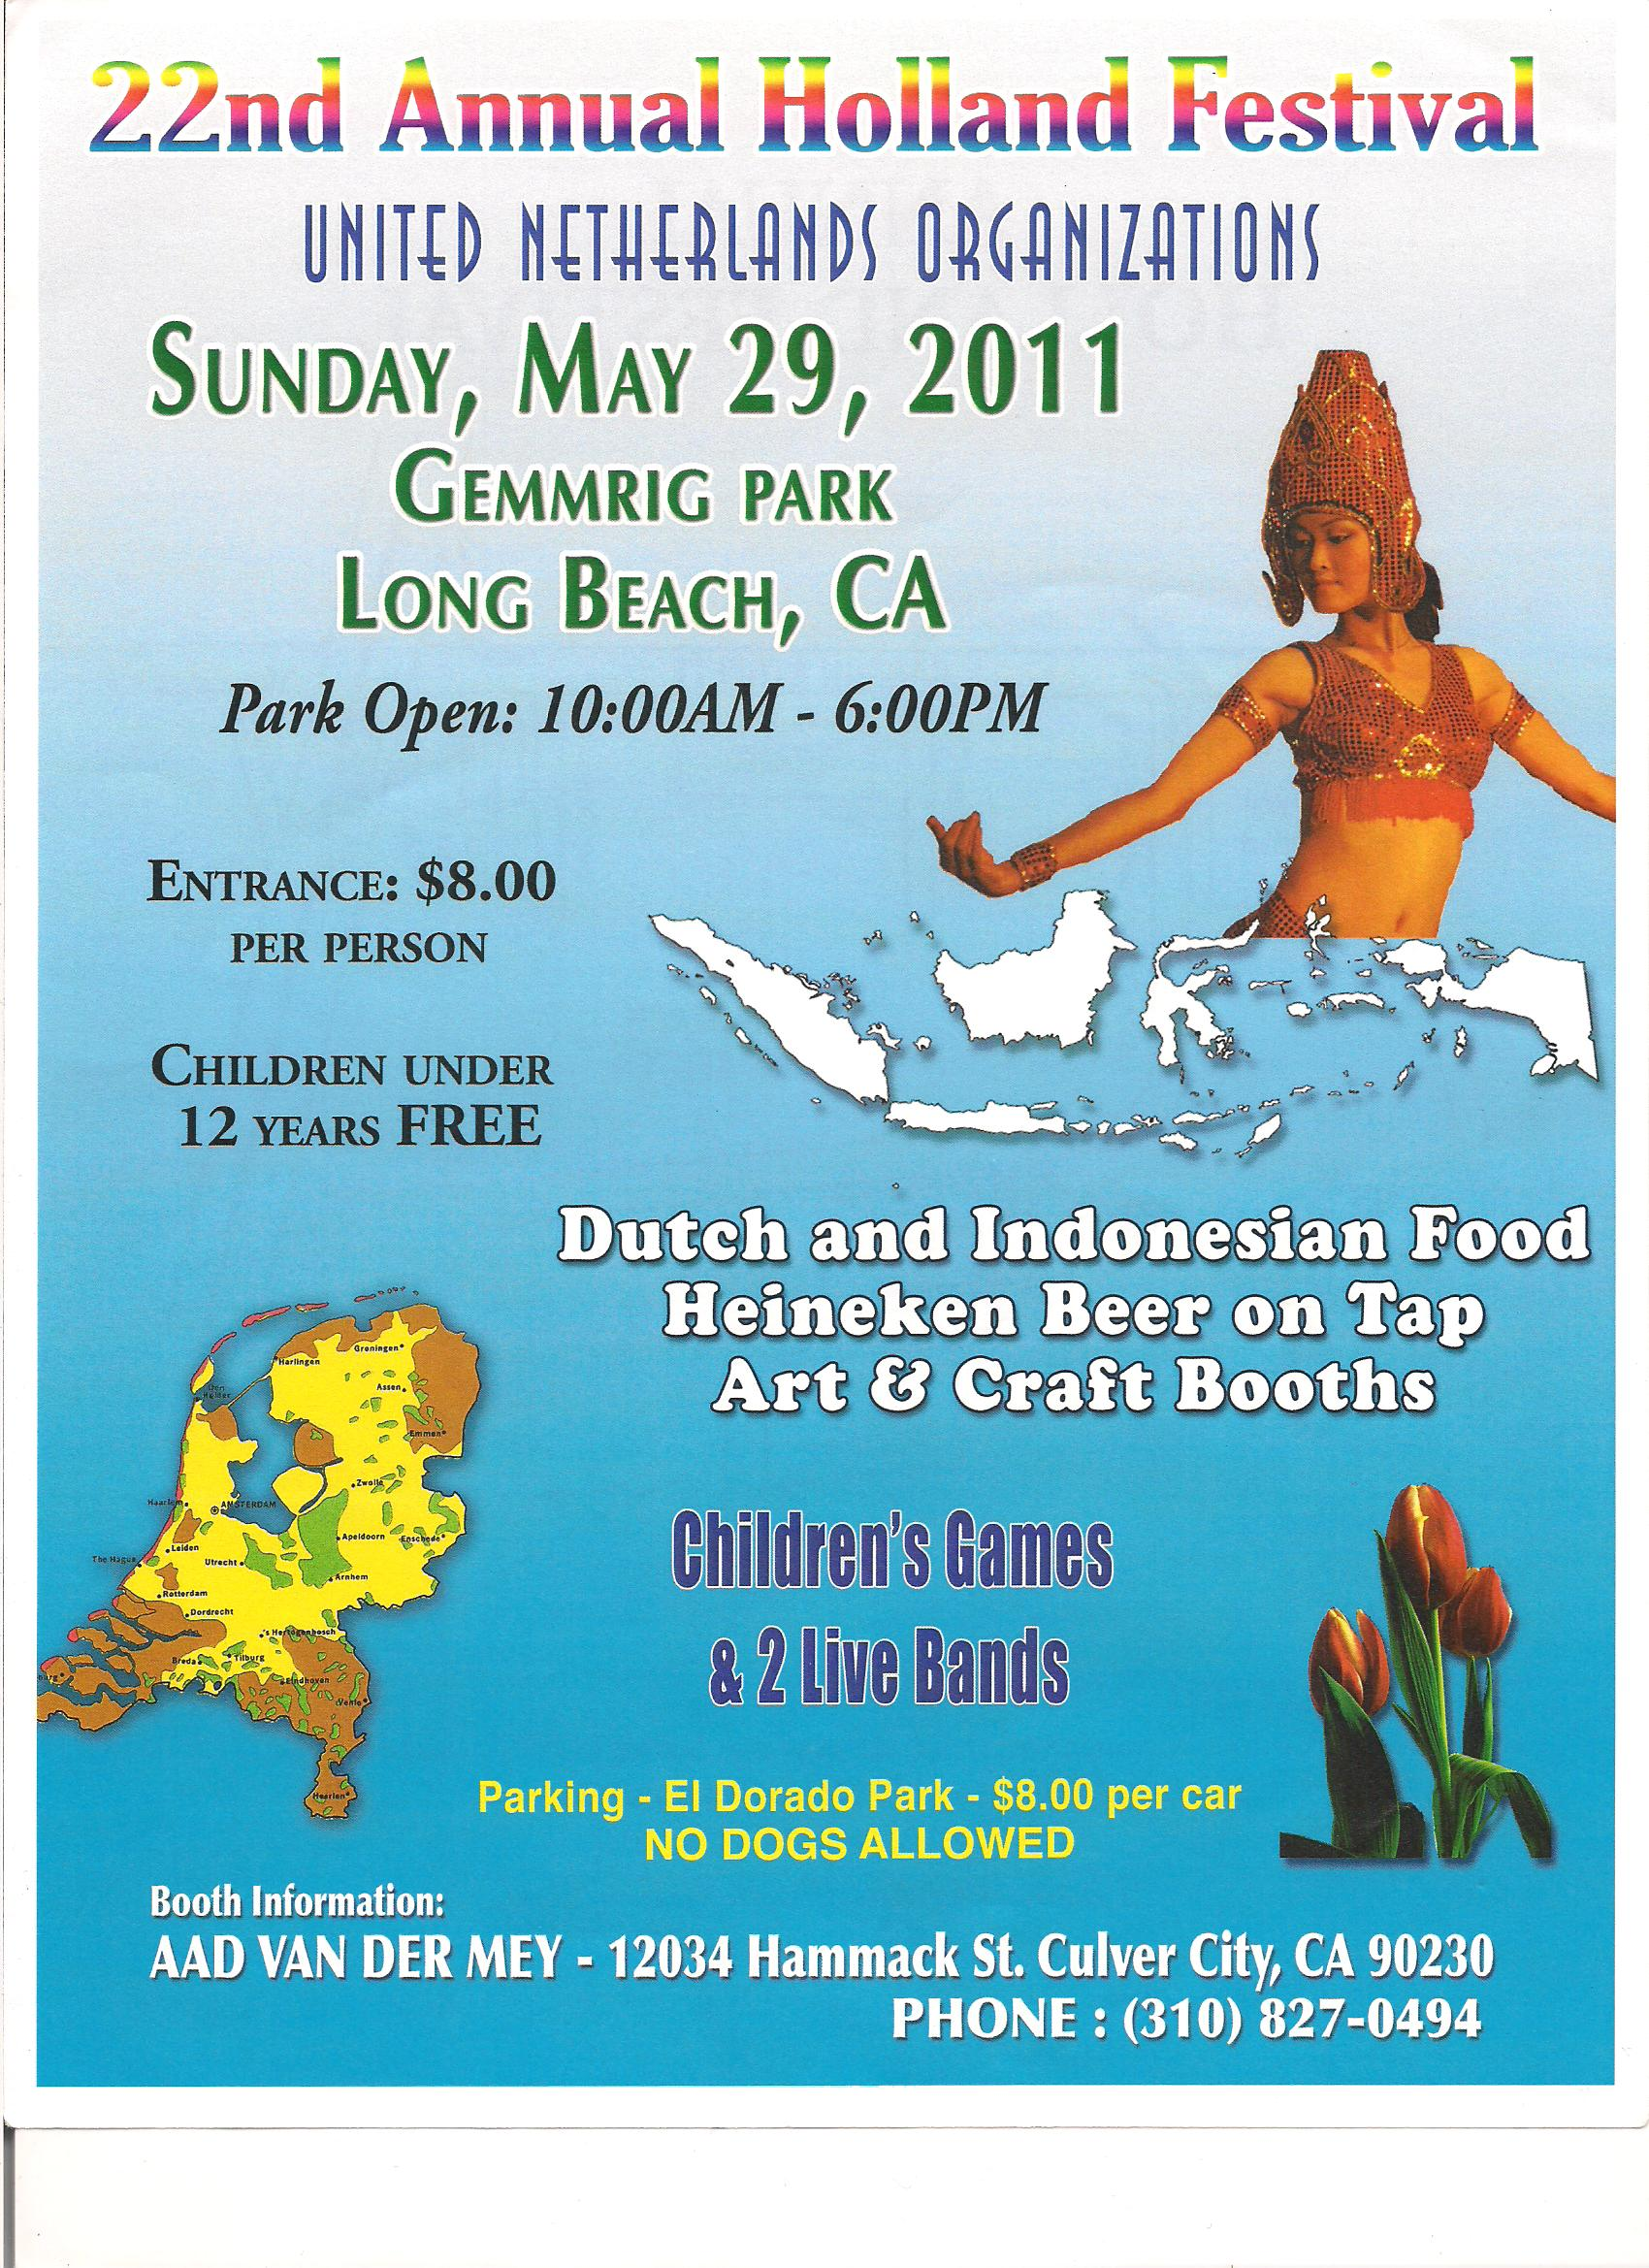 22nd Annual Holland Festival – May 29